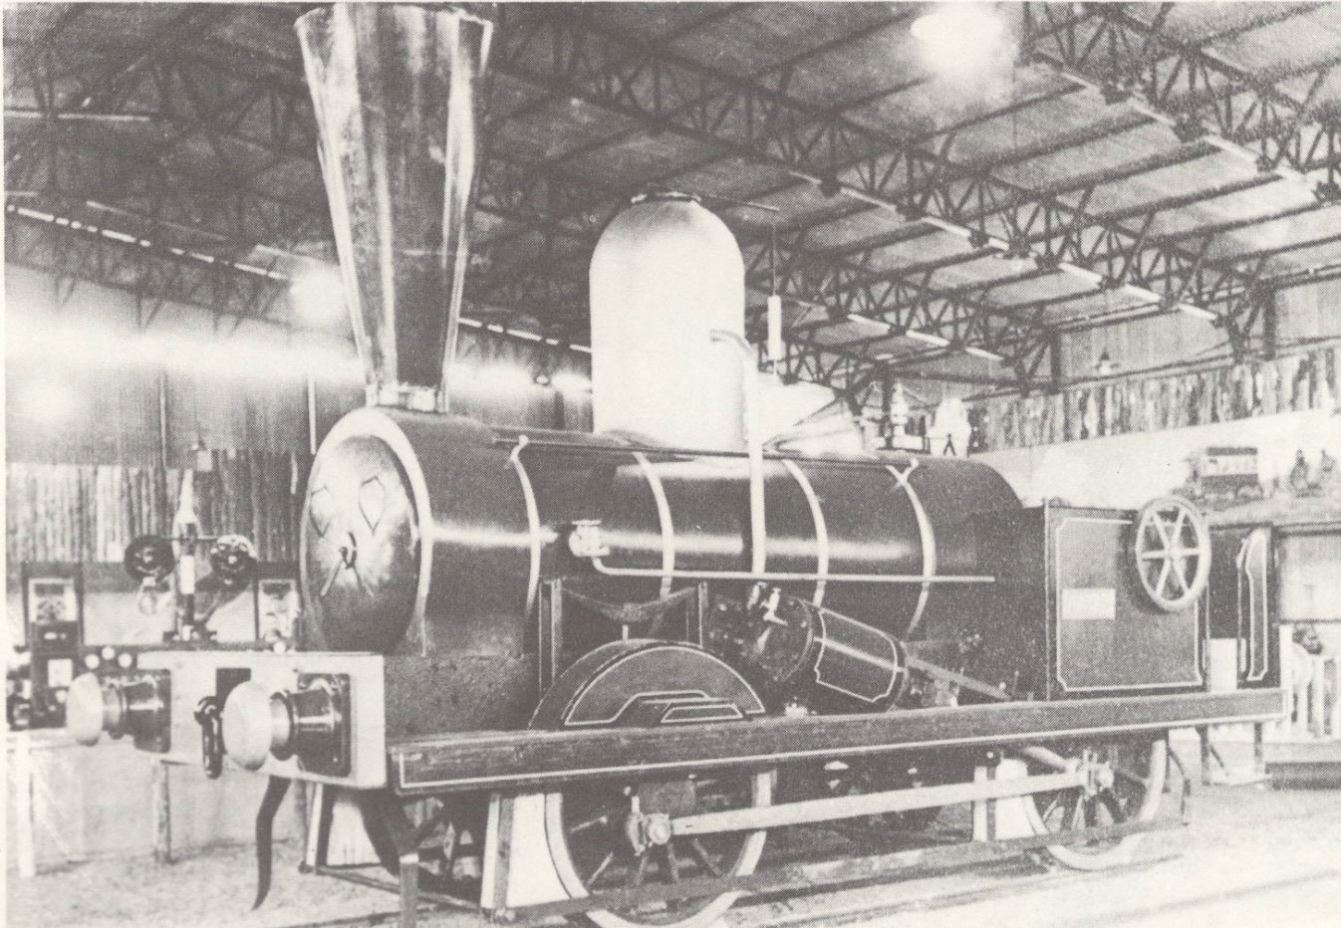 The 'Natal' steam locomotive at the time of her restoration